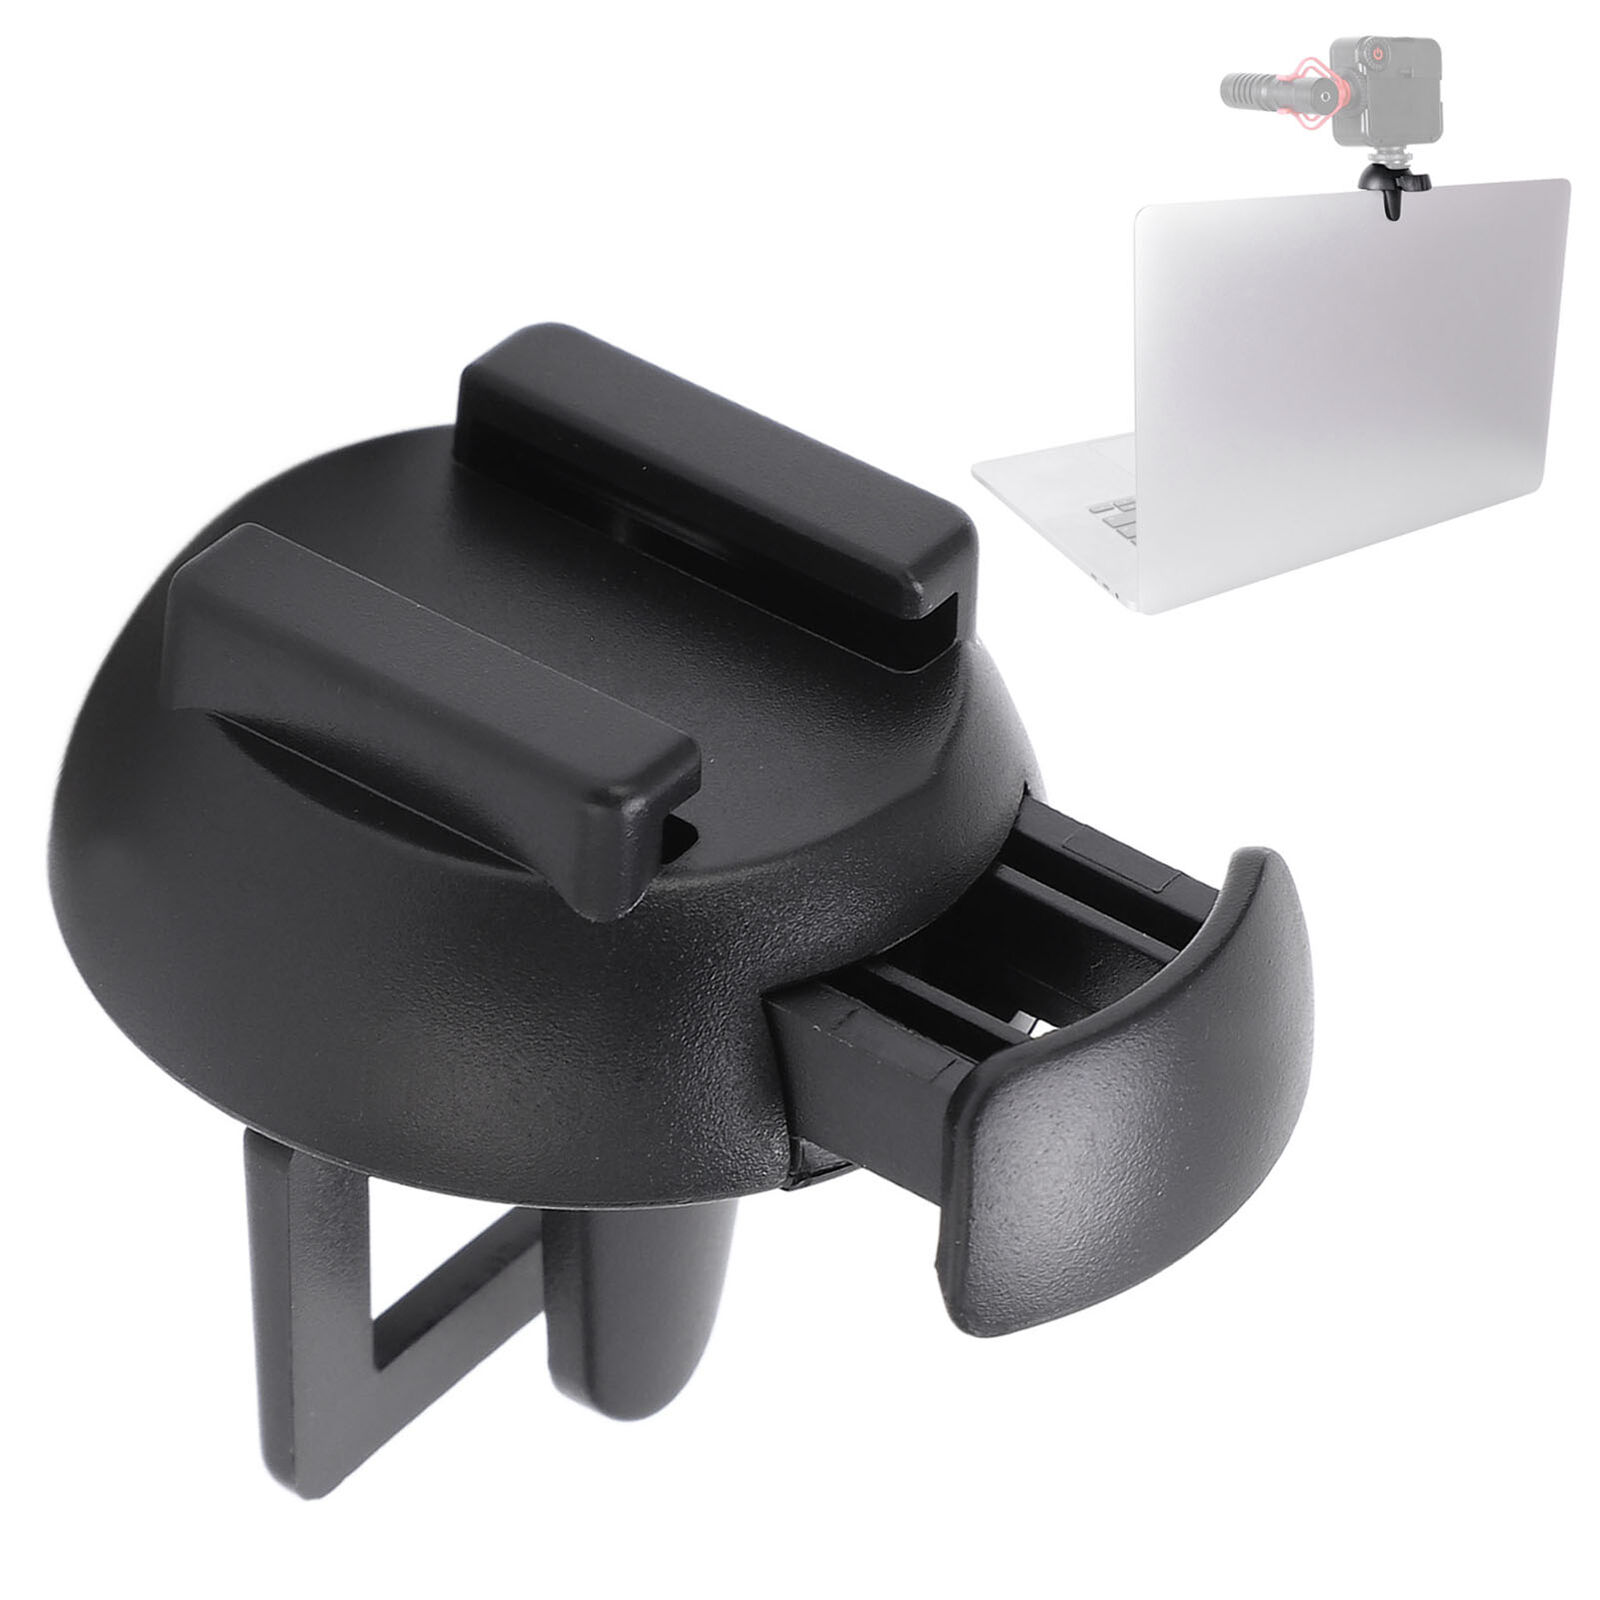 1X Laptop Notebook Clip Fill Light Holder with Cold Shoe Mount for Live Video